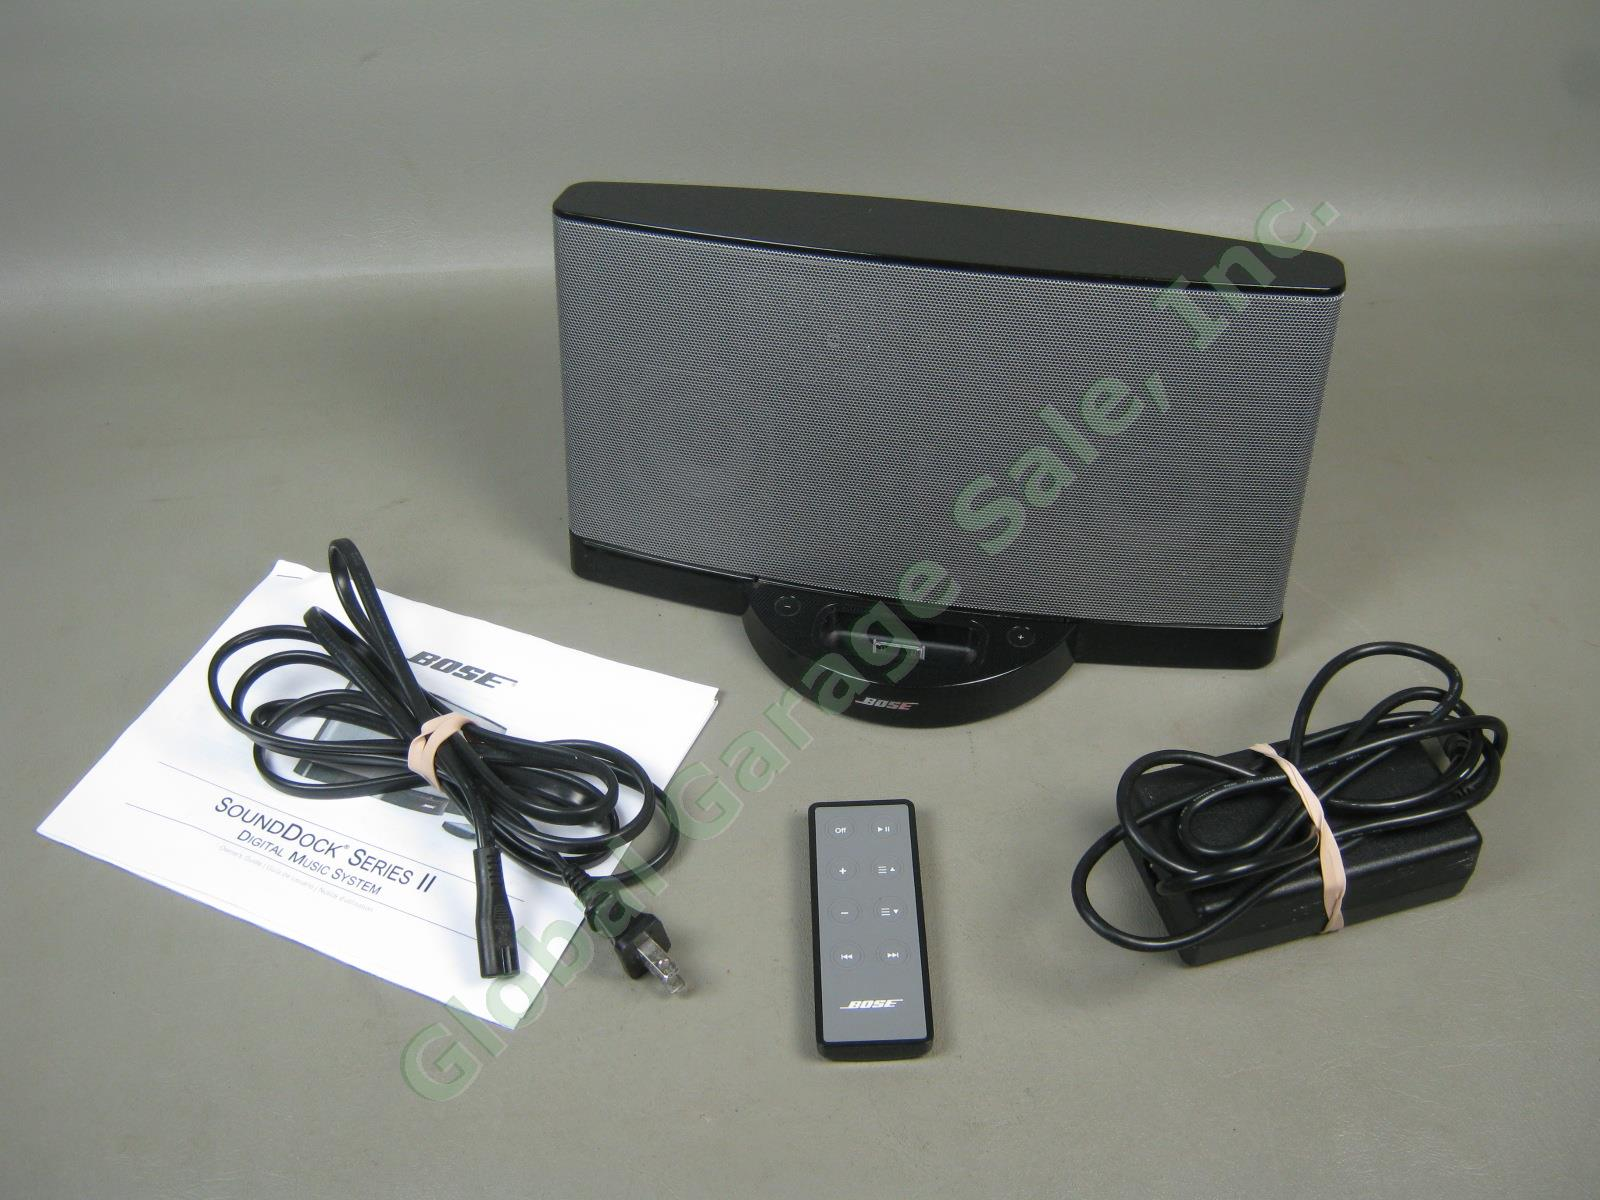 bose sounddock series ii digital music system ipod iphone docking station bundle ebay. Black Bedroom Furniture Sets. Home Design Ideas